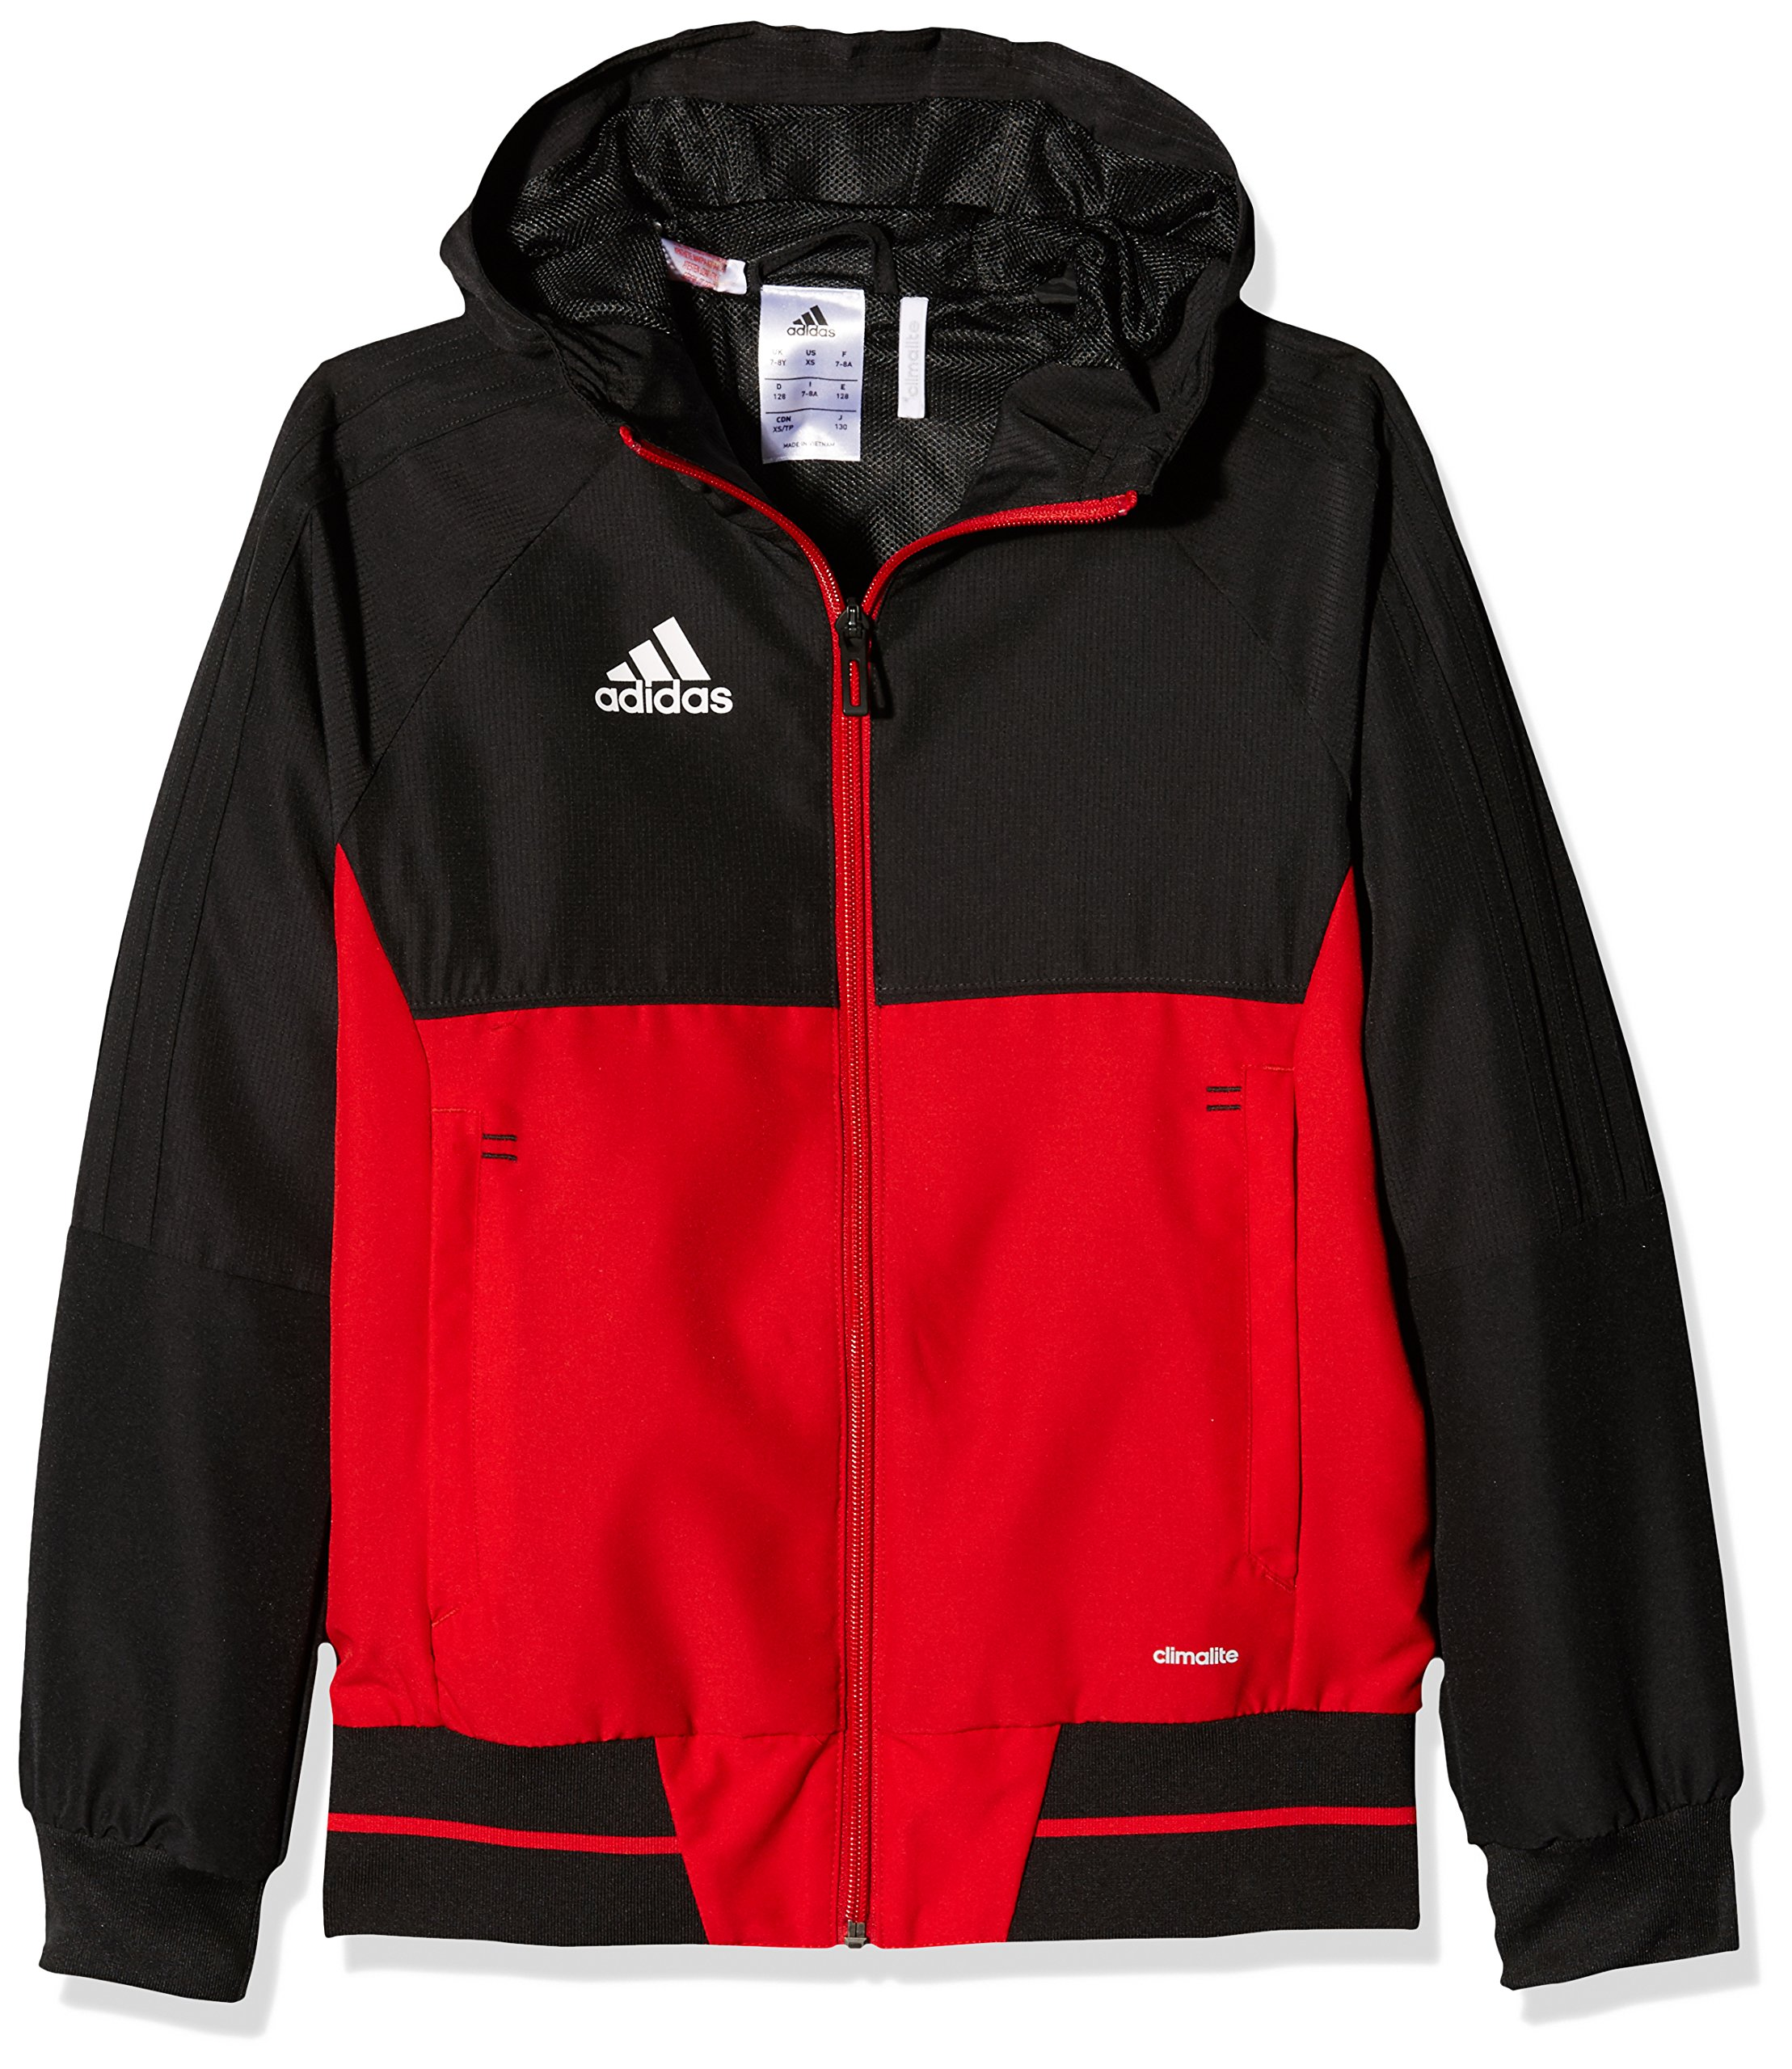 adidas Tiro 17 Plain Presentation Jacket - Youth - Black/Red - Age 13-14